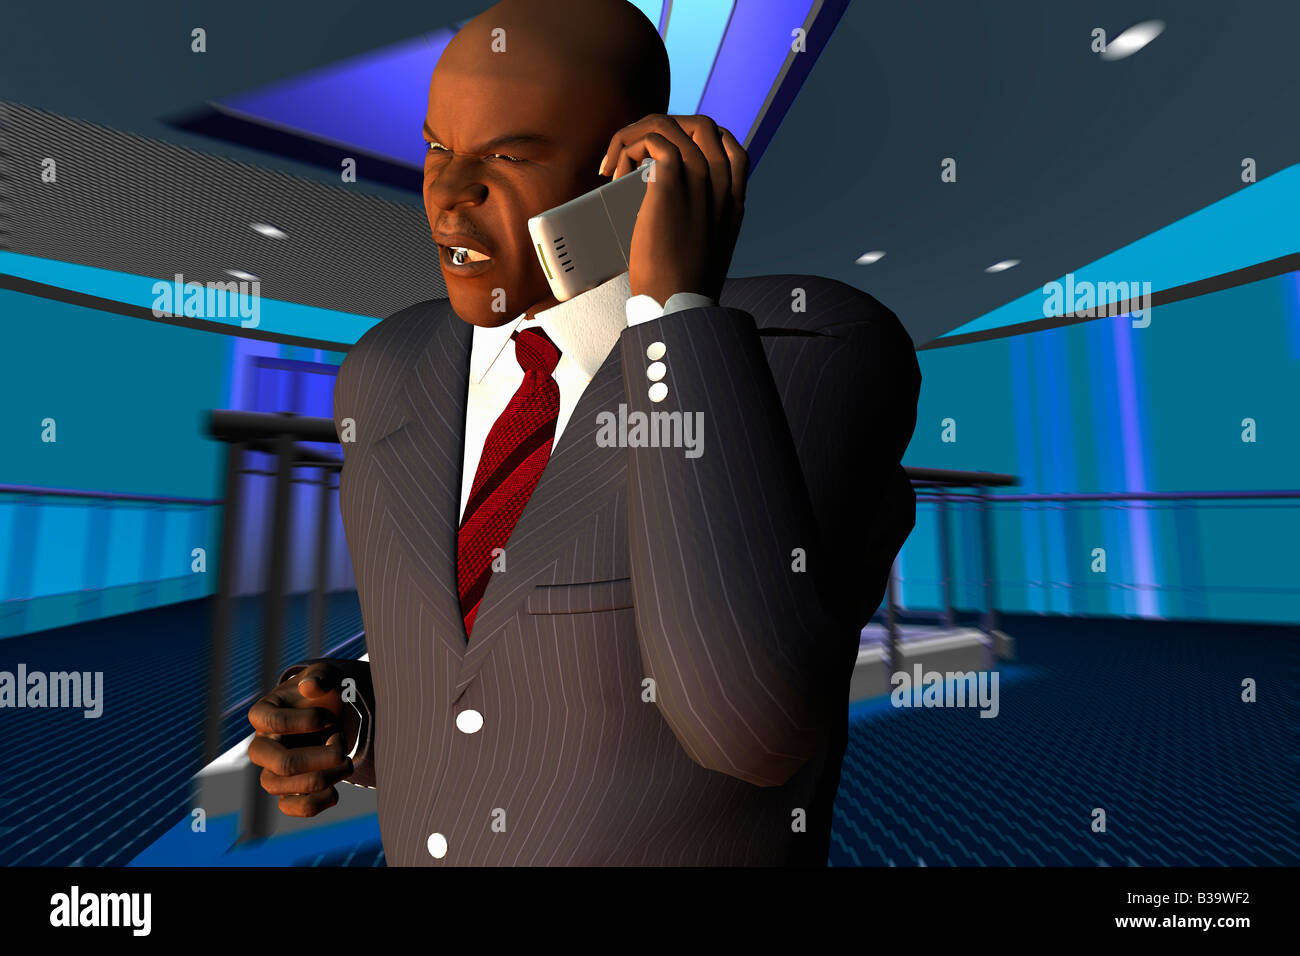 Computer Illustration Of A Businessman Talking On A Mobile Phone - Stock Image